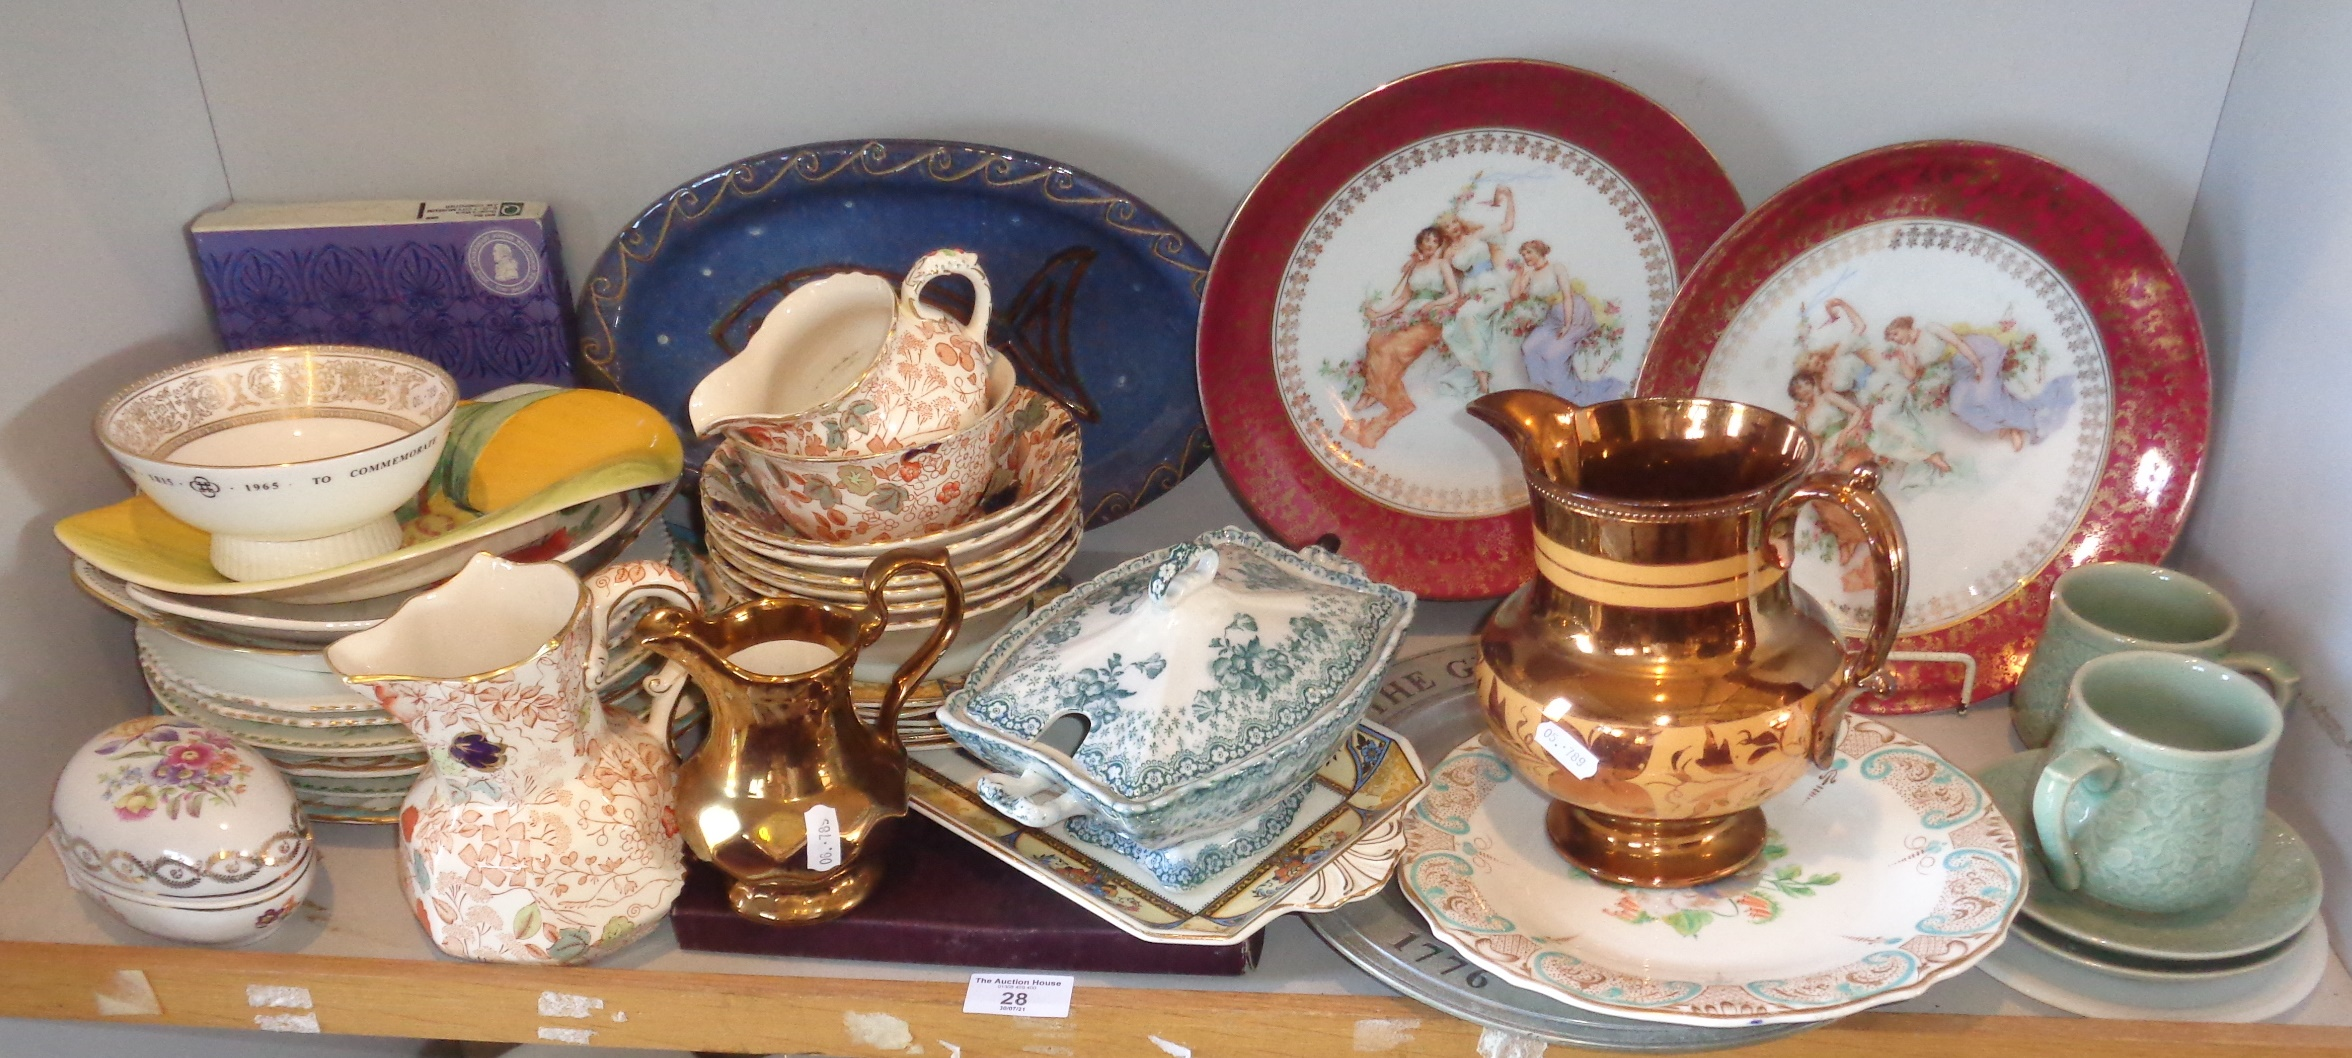 Shelf of assorted china plates, including a Midwinter Stylecraft Fashion shape dish and two lustre